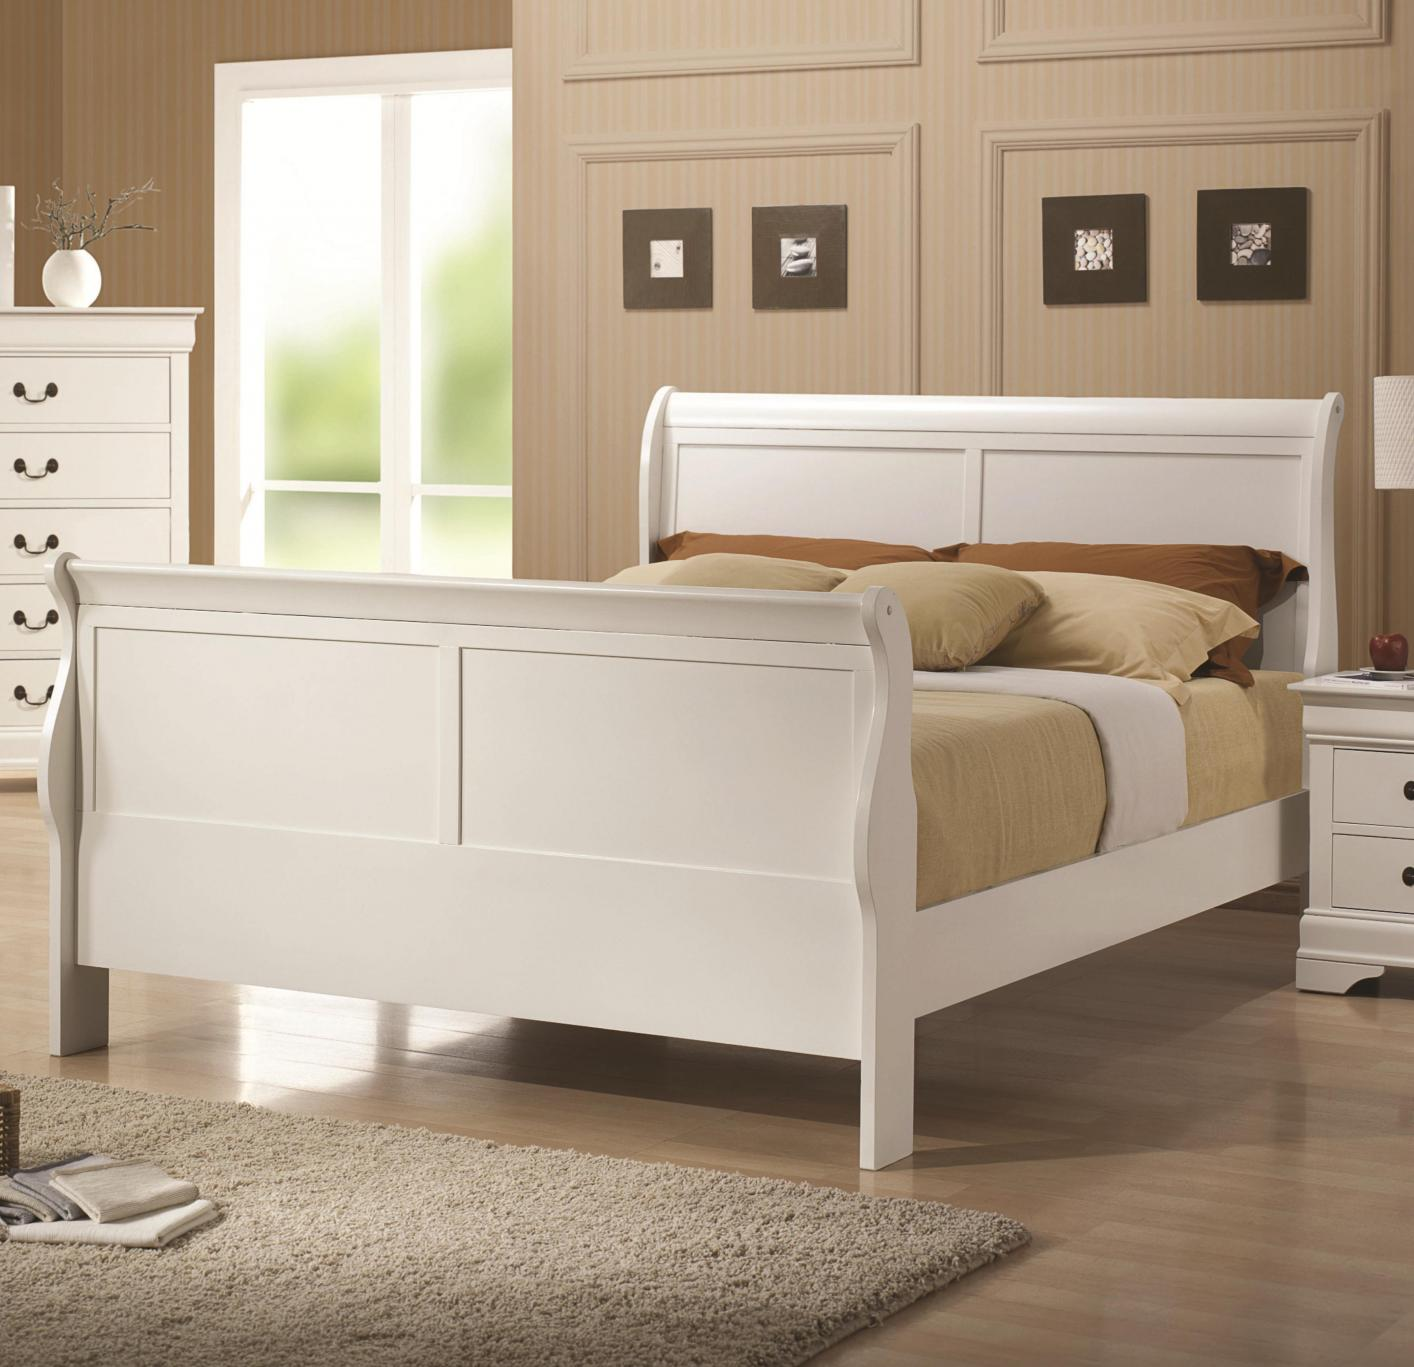 Genial White Wood Bed